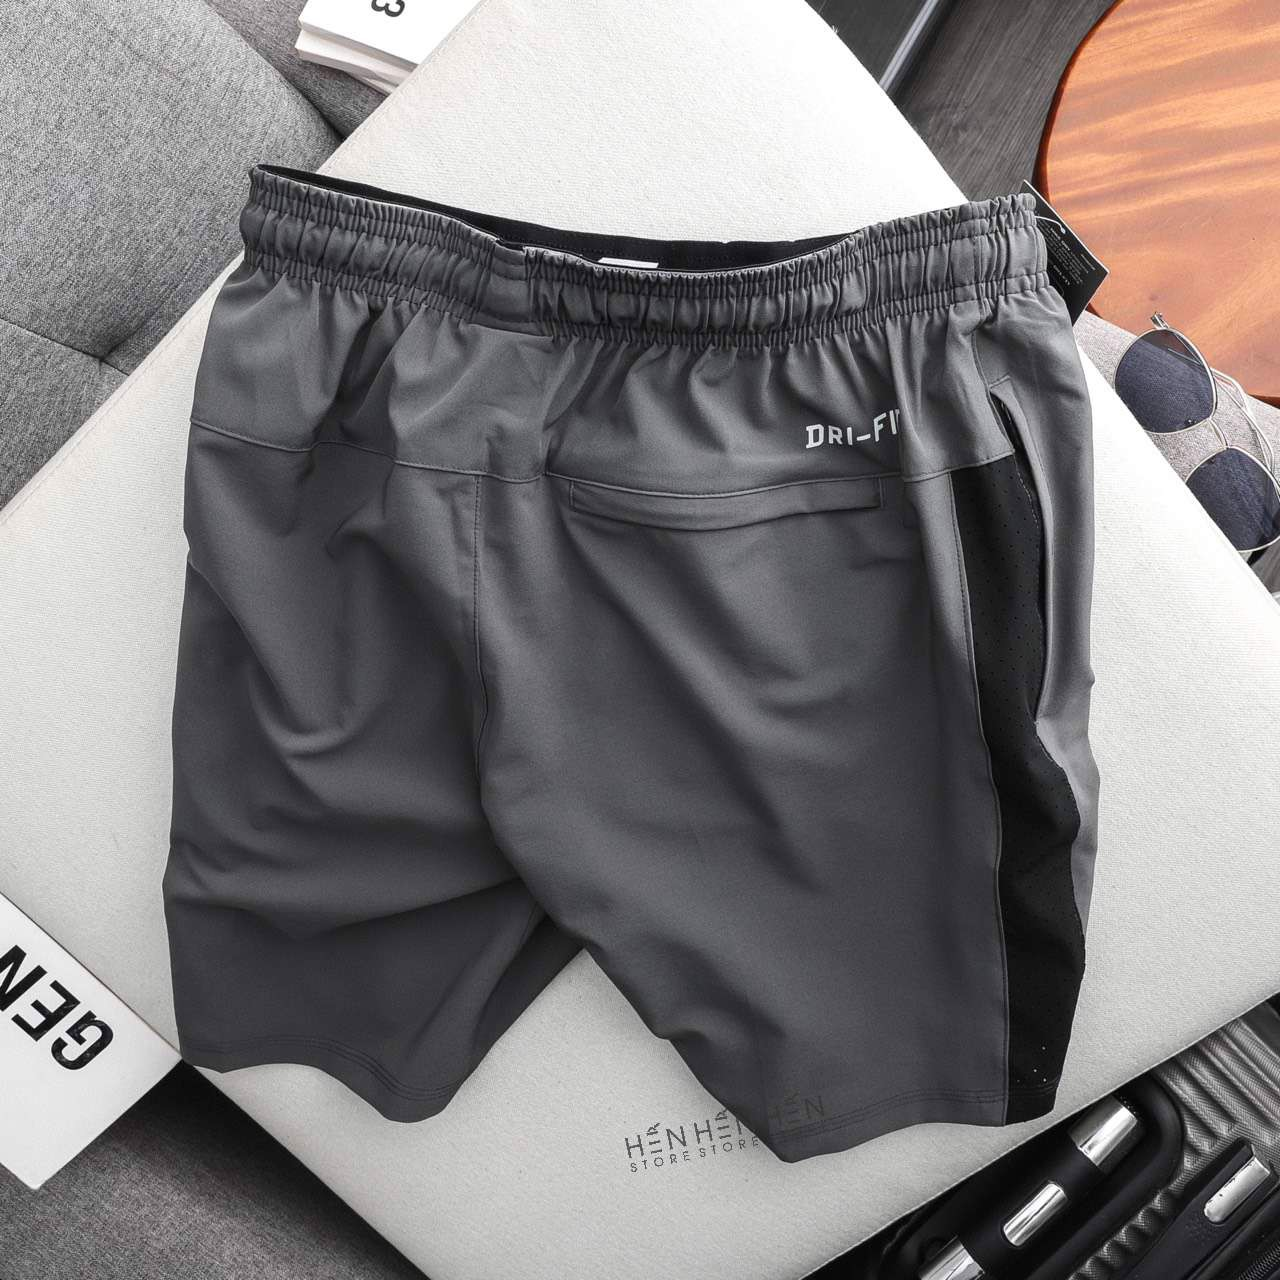 Quần short Ni.ke Just do it 3M